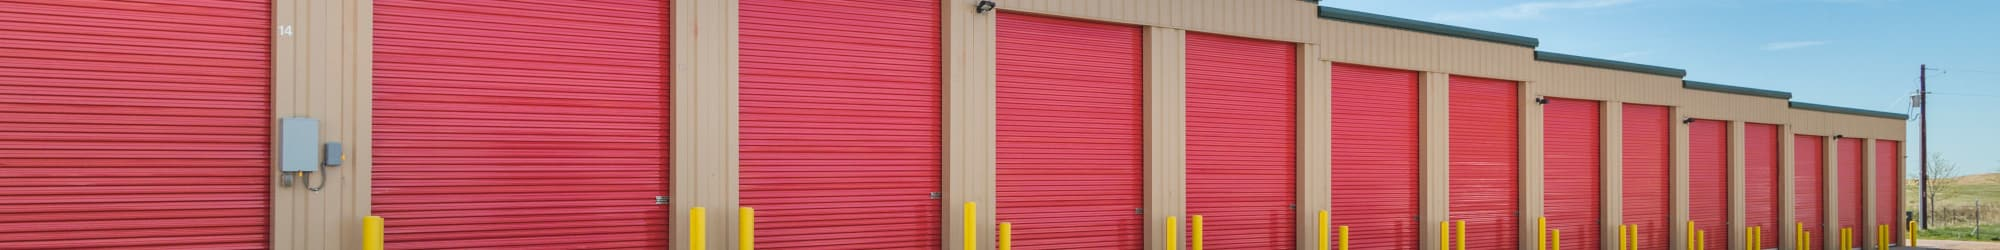 Unit Sizes & Prices at Smart Space Self Storage - Stetson Hills in Colorado Springs, Colorado